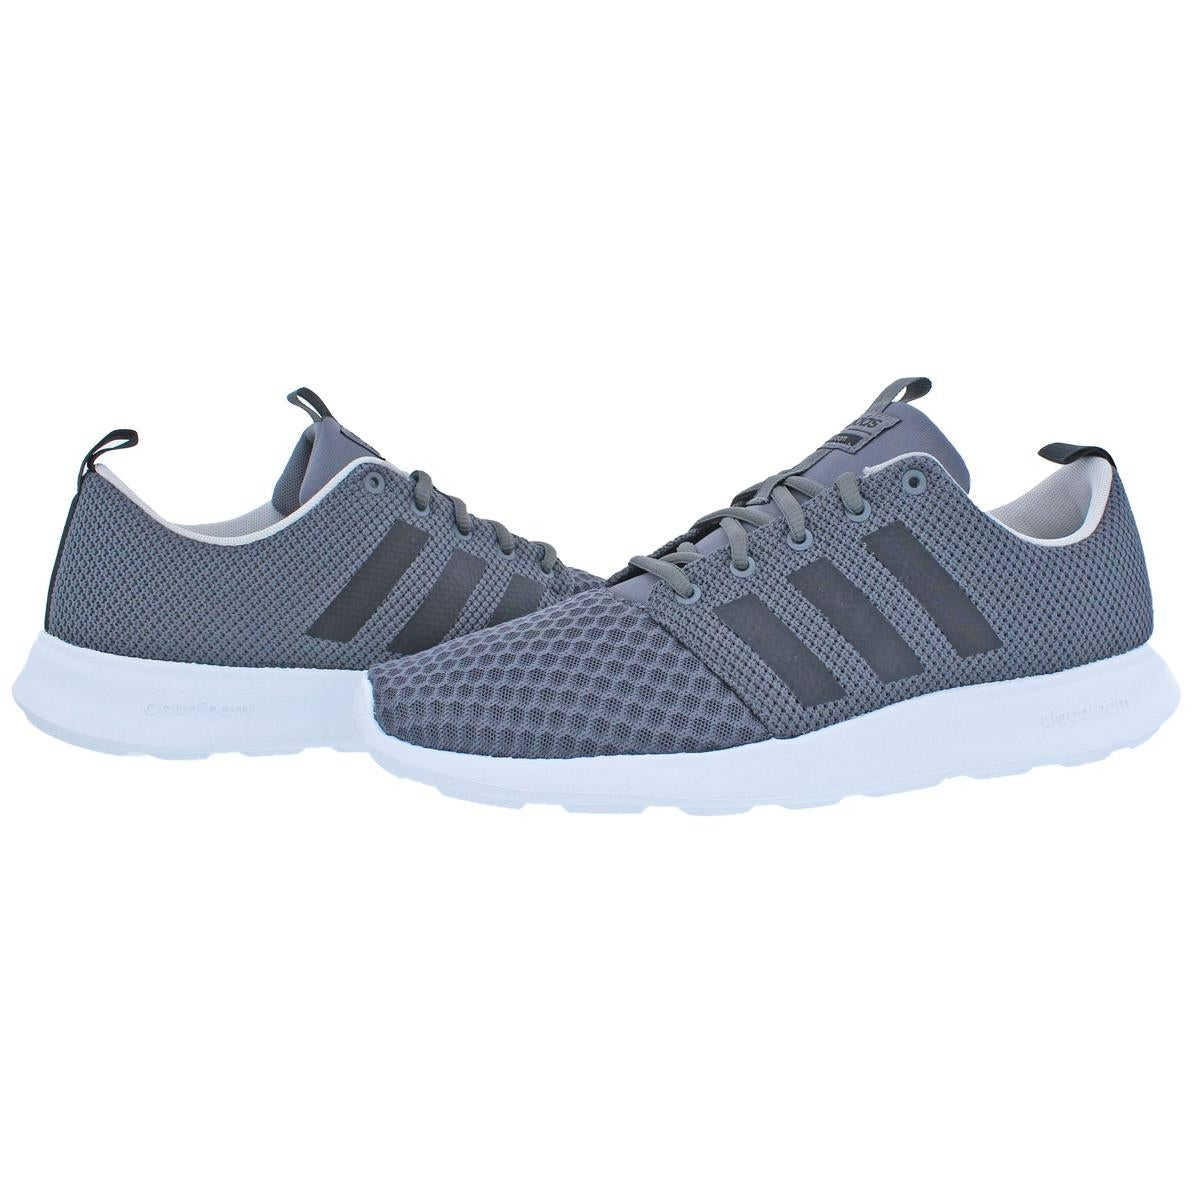 ddde7accf Shop adidas NEO Mens Cloudfoam Swift Racer Running Shoes Lightweight  Athleisure - Free Shipping On Orders Over  45 - Overstock - 22680211